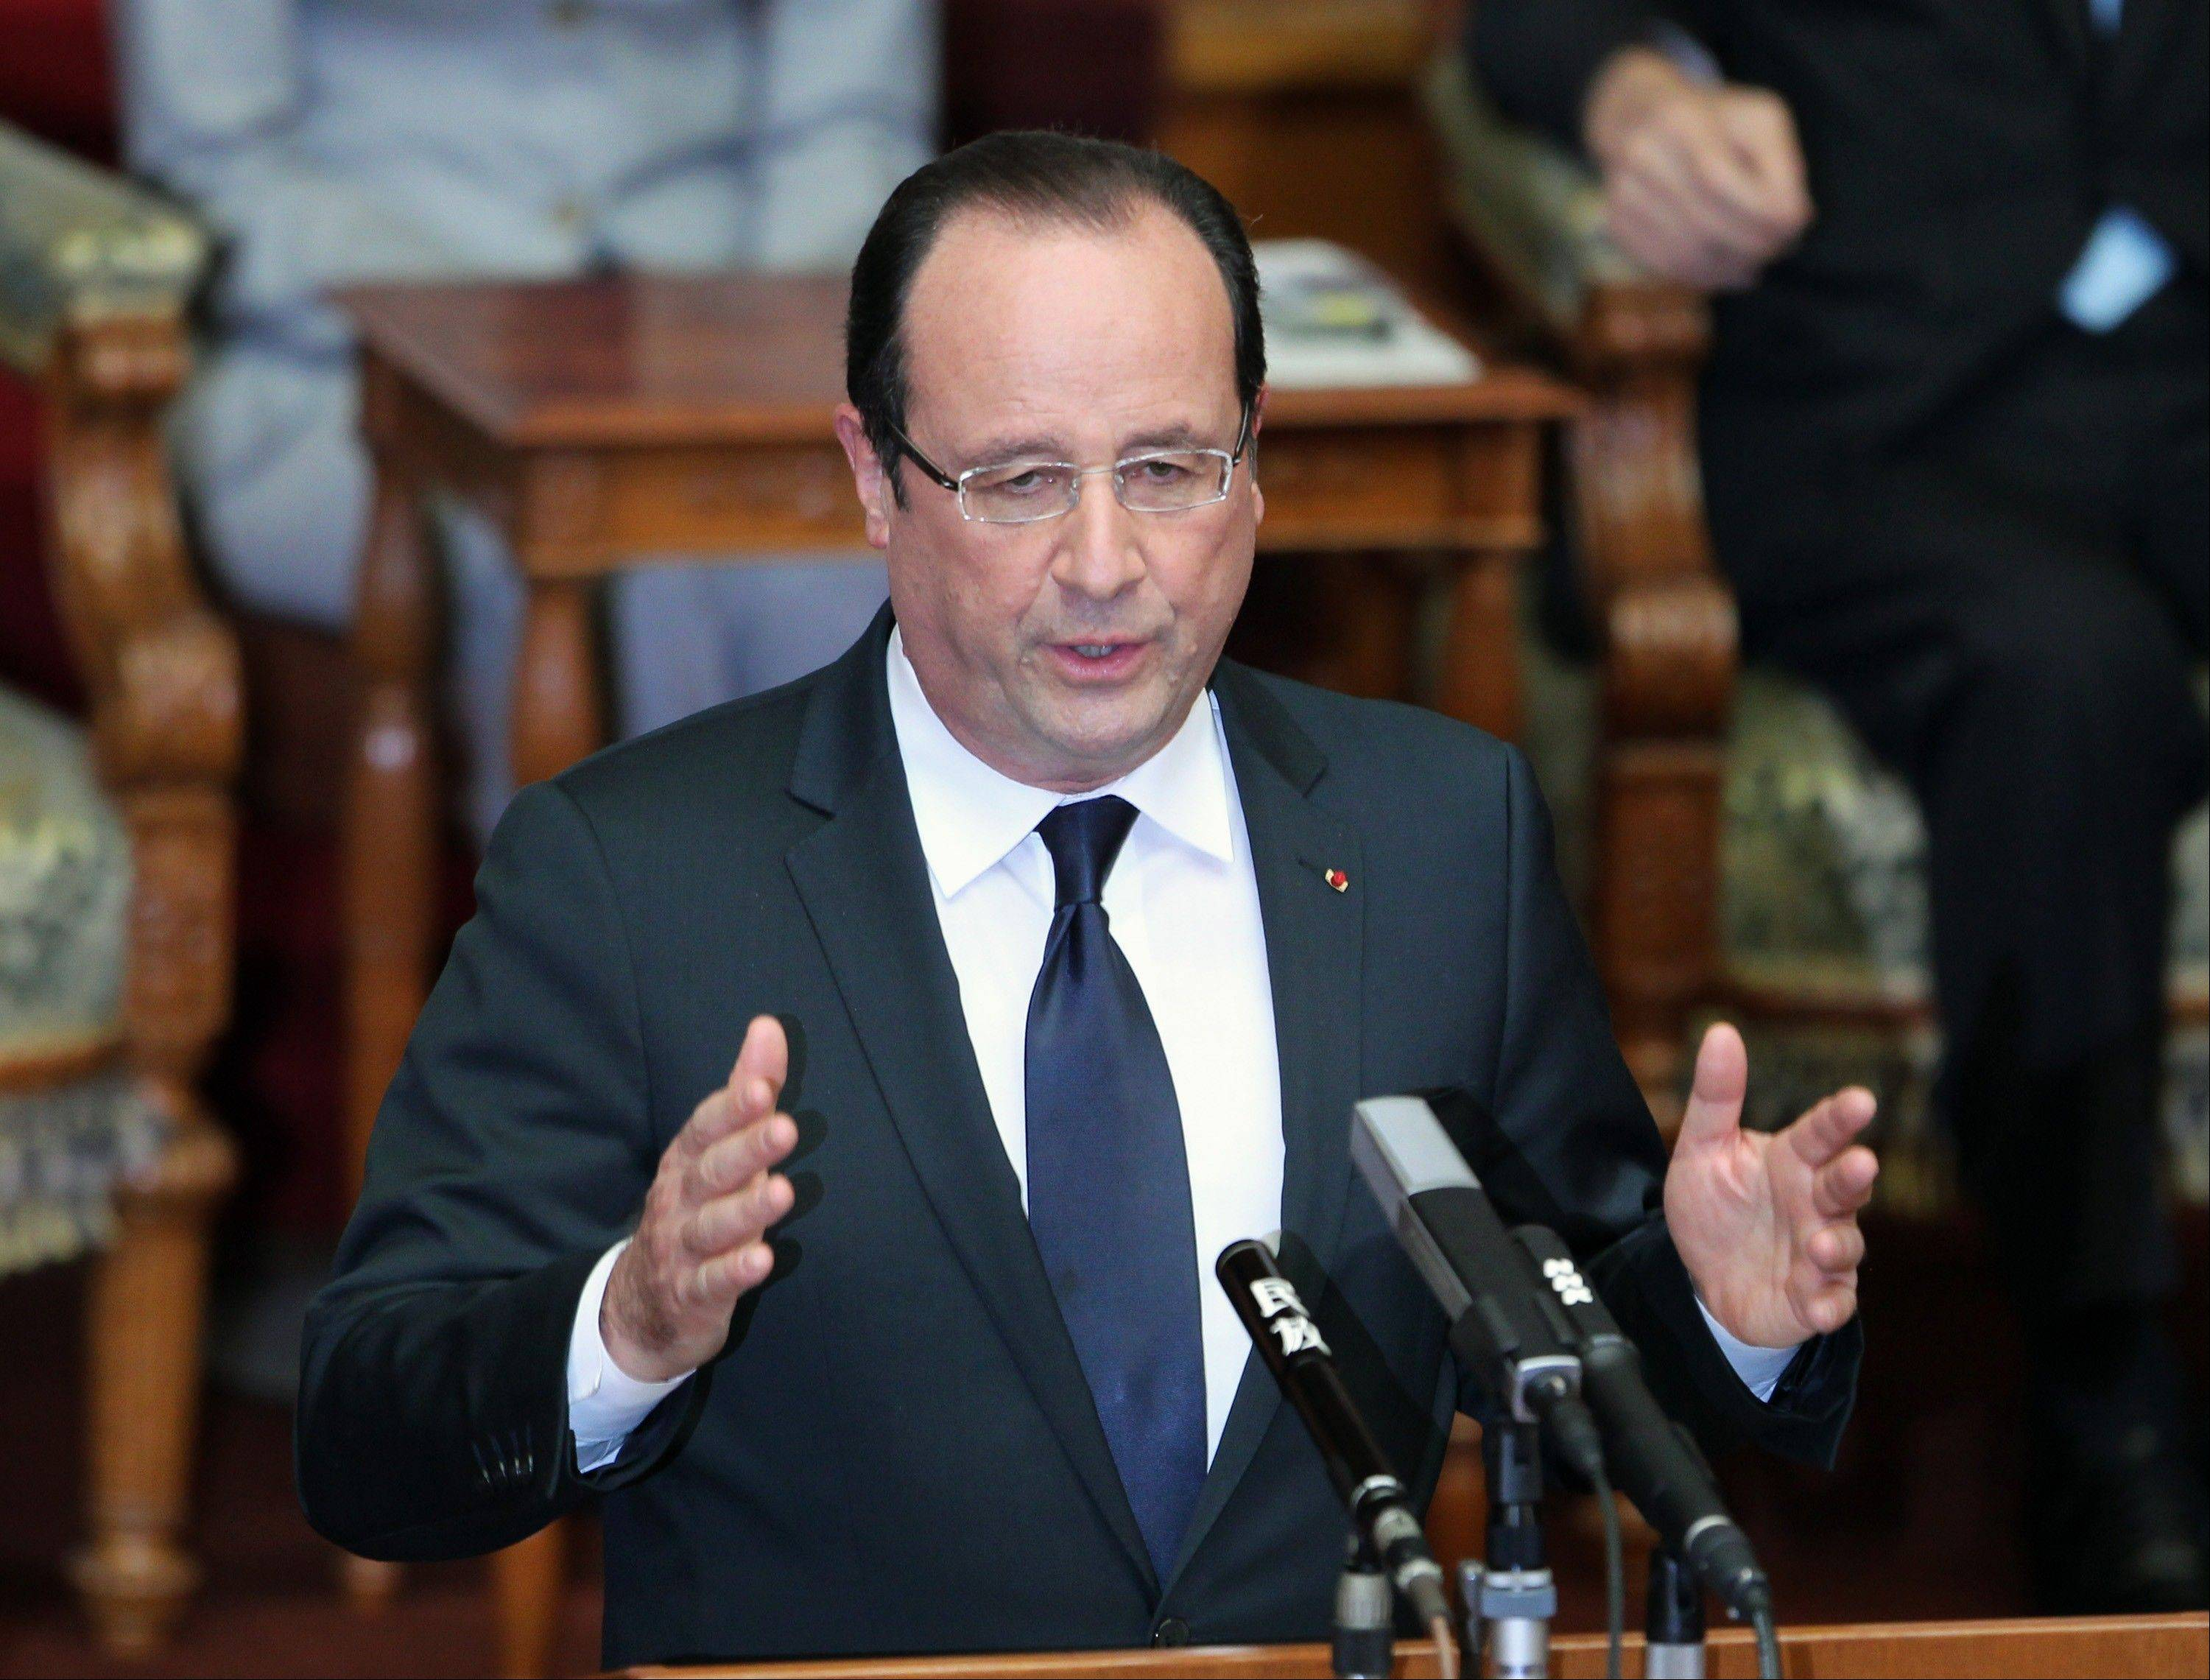 Francois Hollande, France�s president, delivers a speech Friday in the upper house of Parliament in Tokyo, Japan.